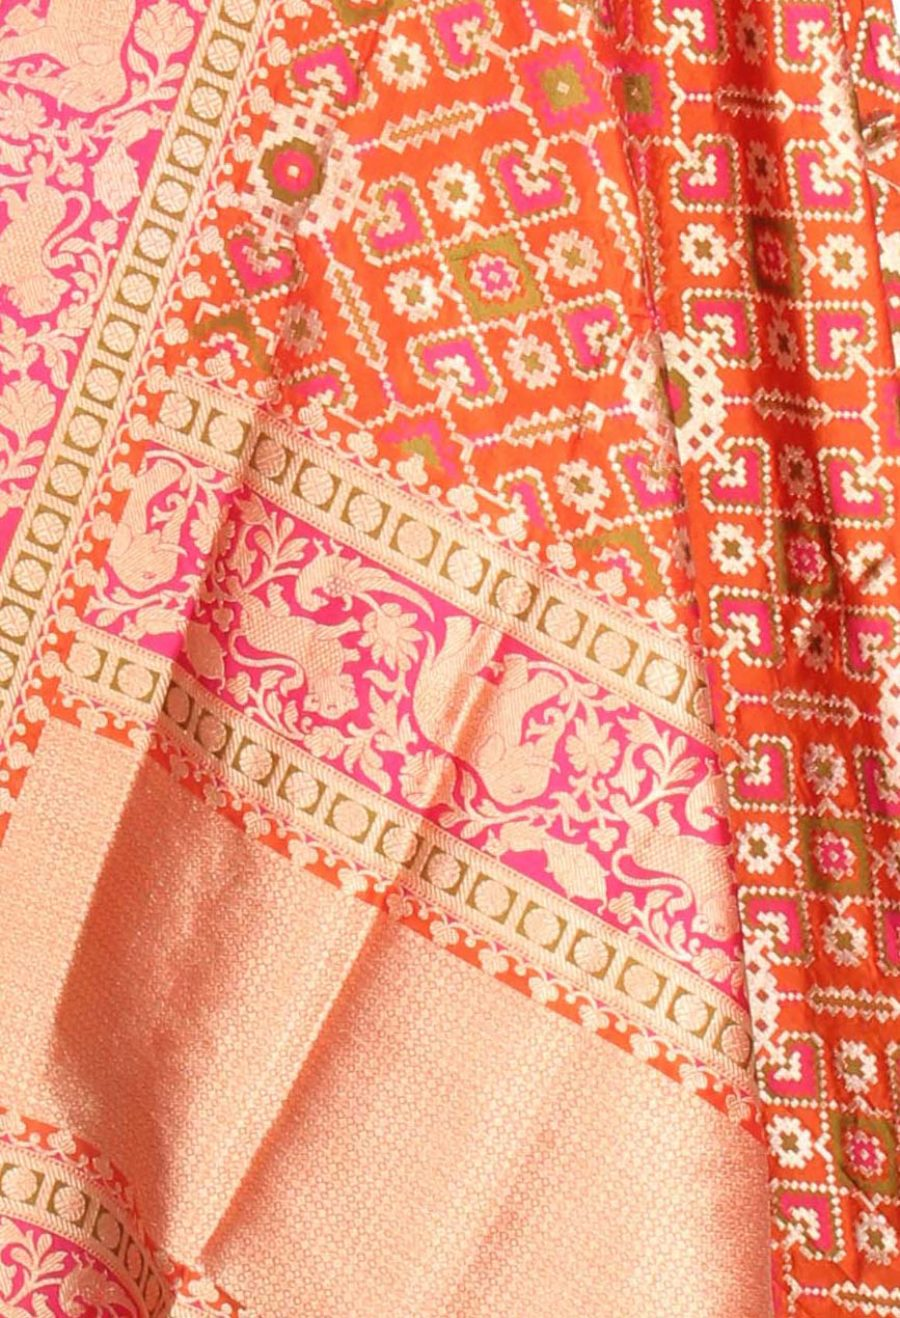 Orange Katan Silk Handwoven Banarasi Dupatta with meenedar patola jaal (2) Close up